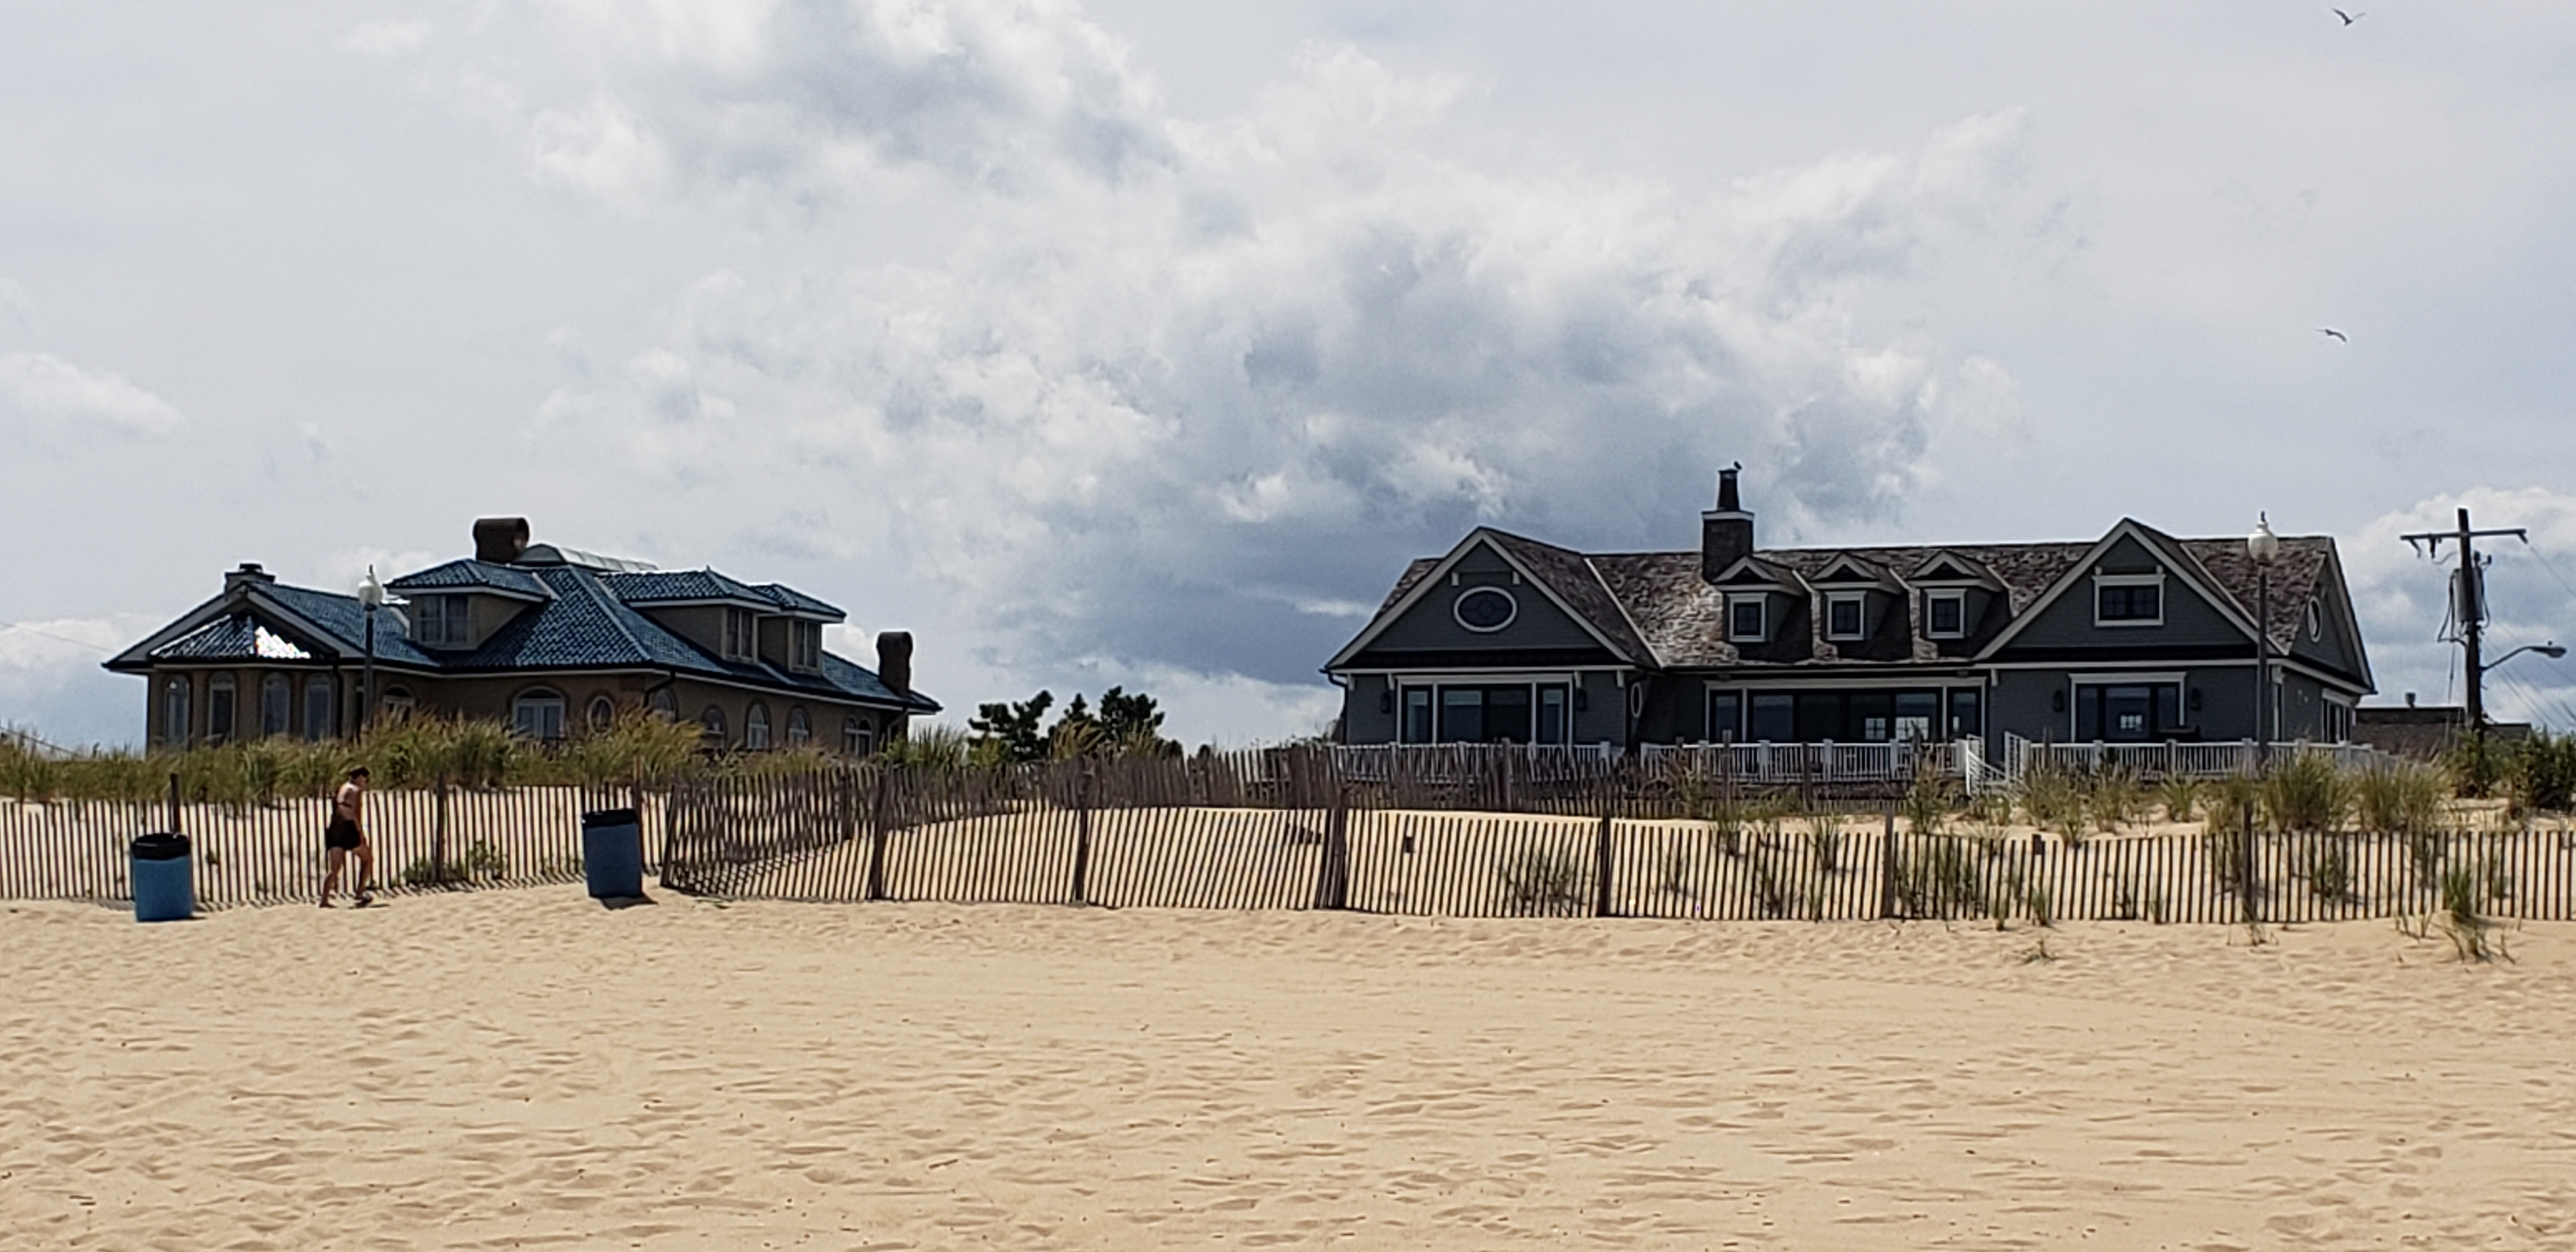 Rehoboth Beach - Visit all 50 states - Best things to do in each state